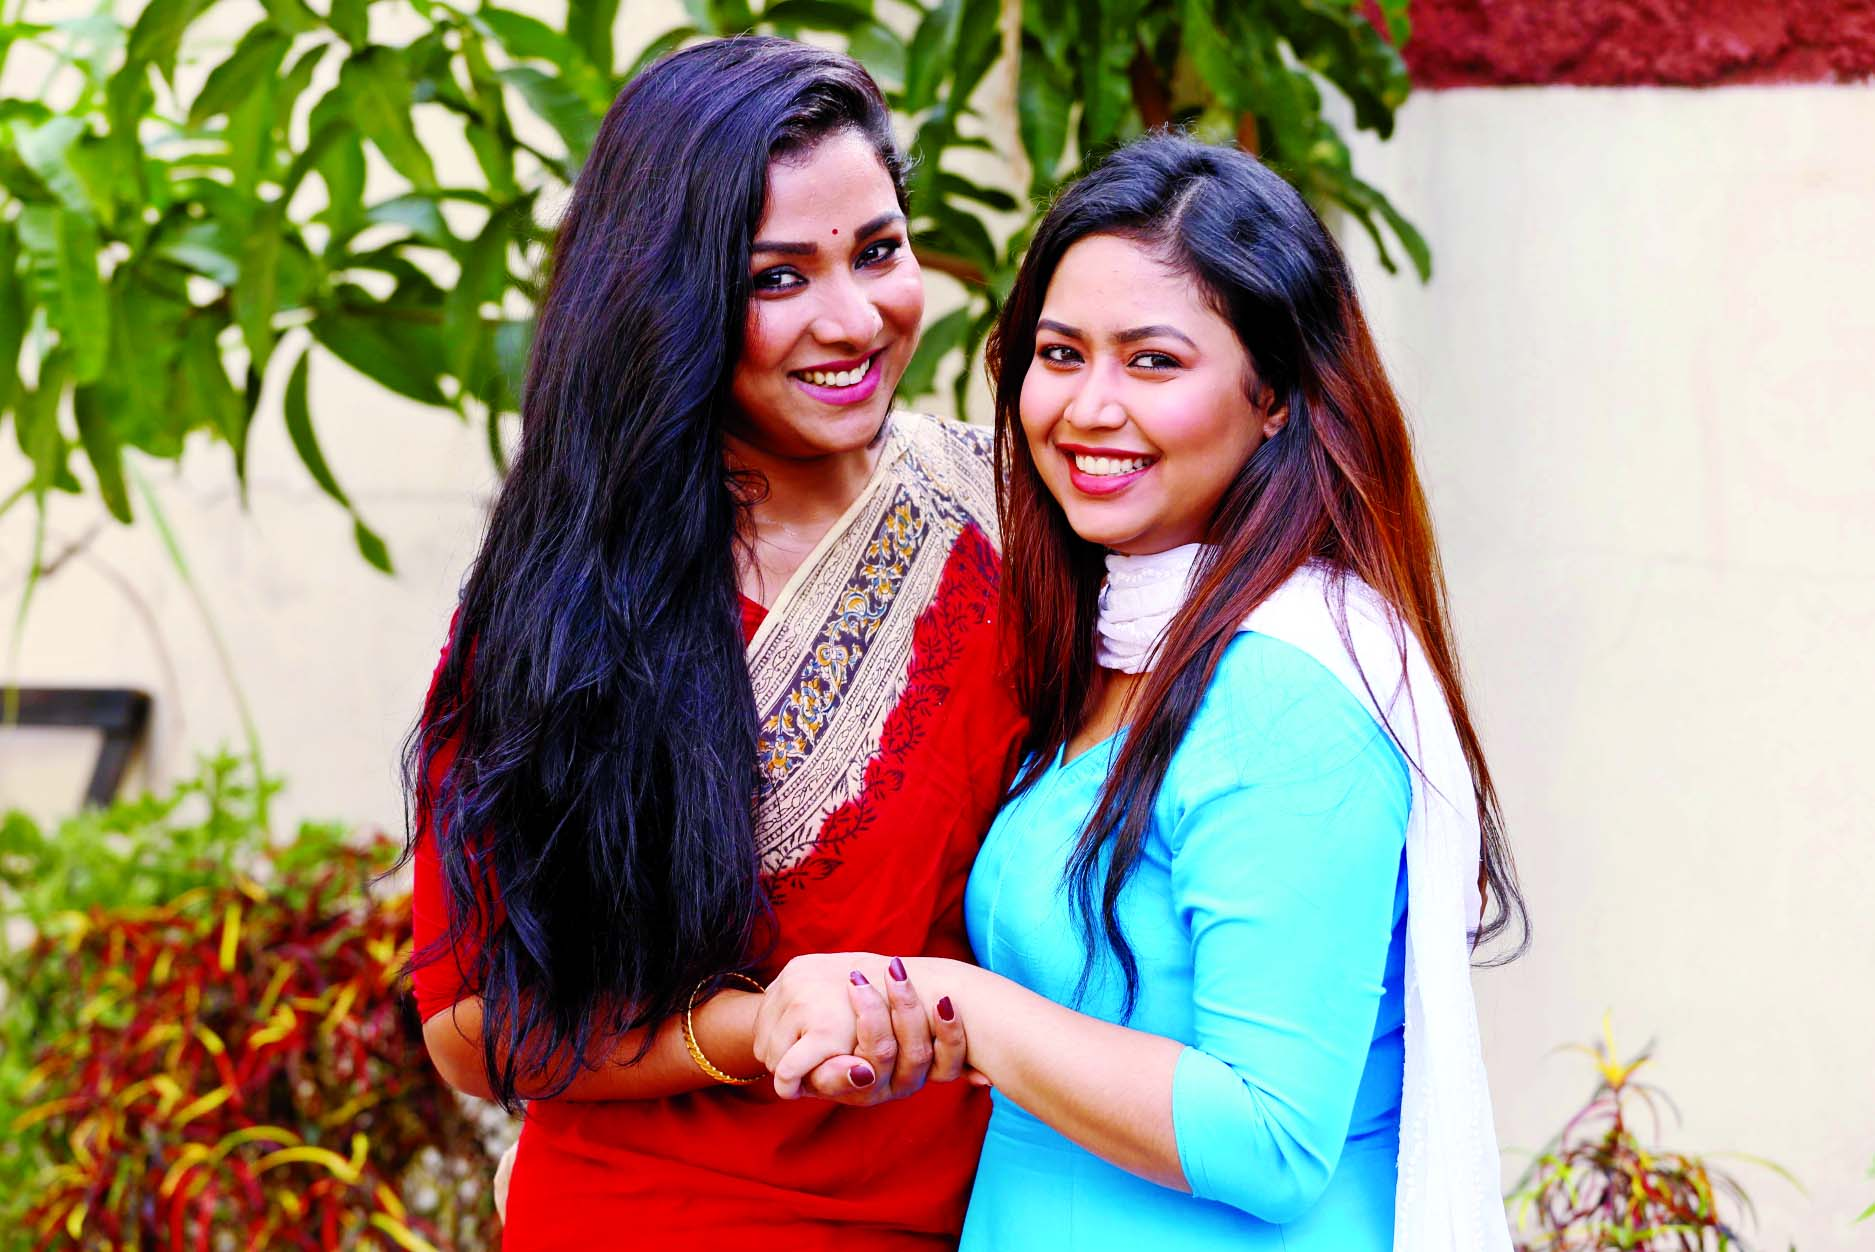 Runa, Bhabna wish success for each other